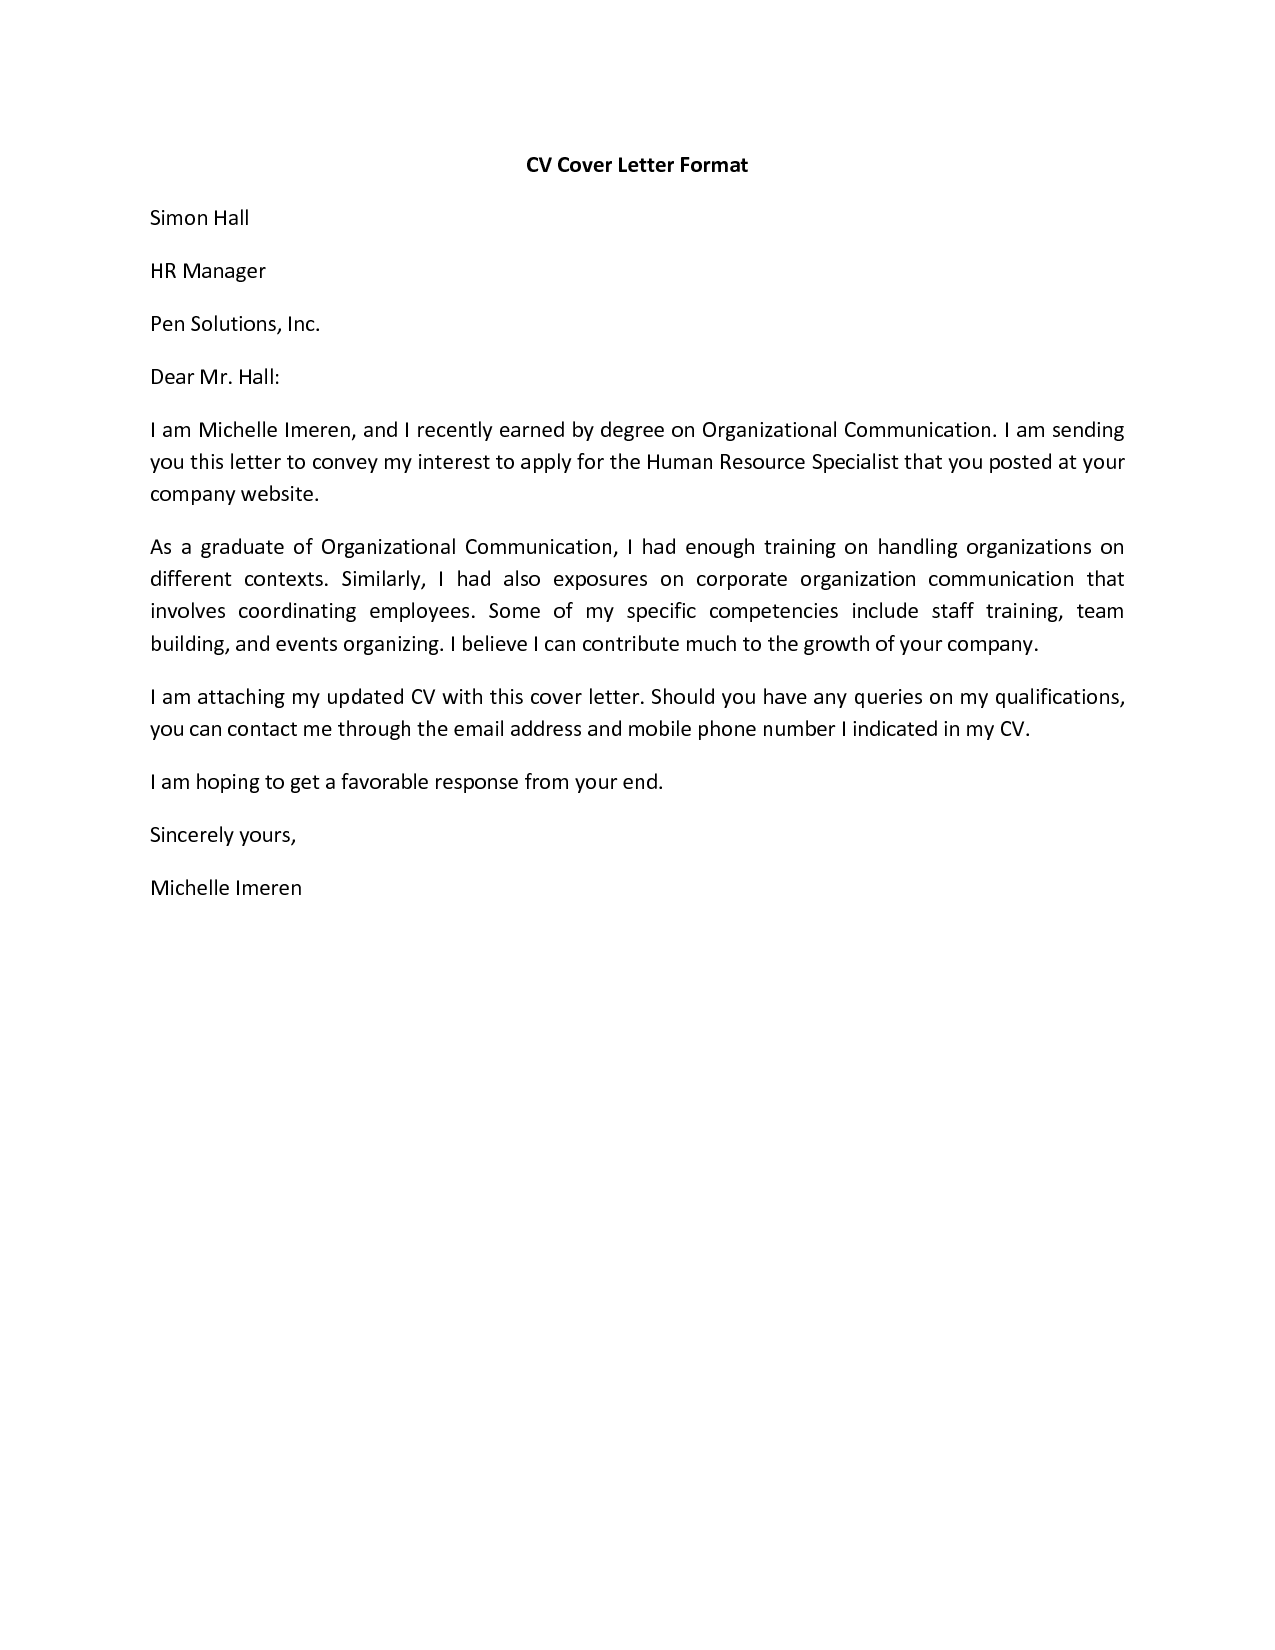 Cover letter for resume fotolipcom rich image and wallpaper for Cover letter for cv